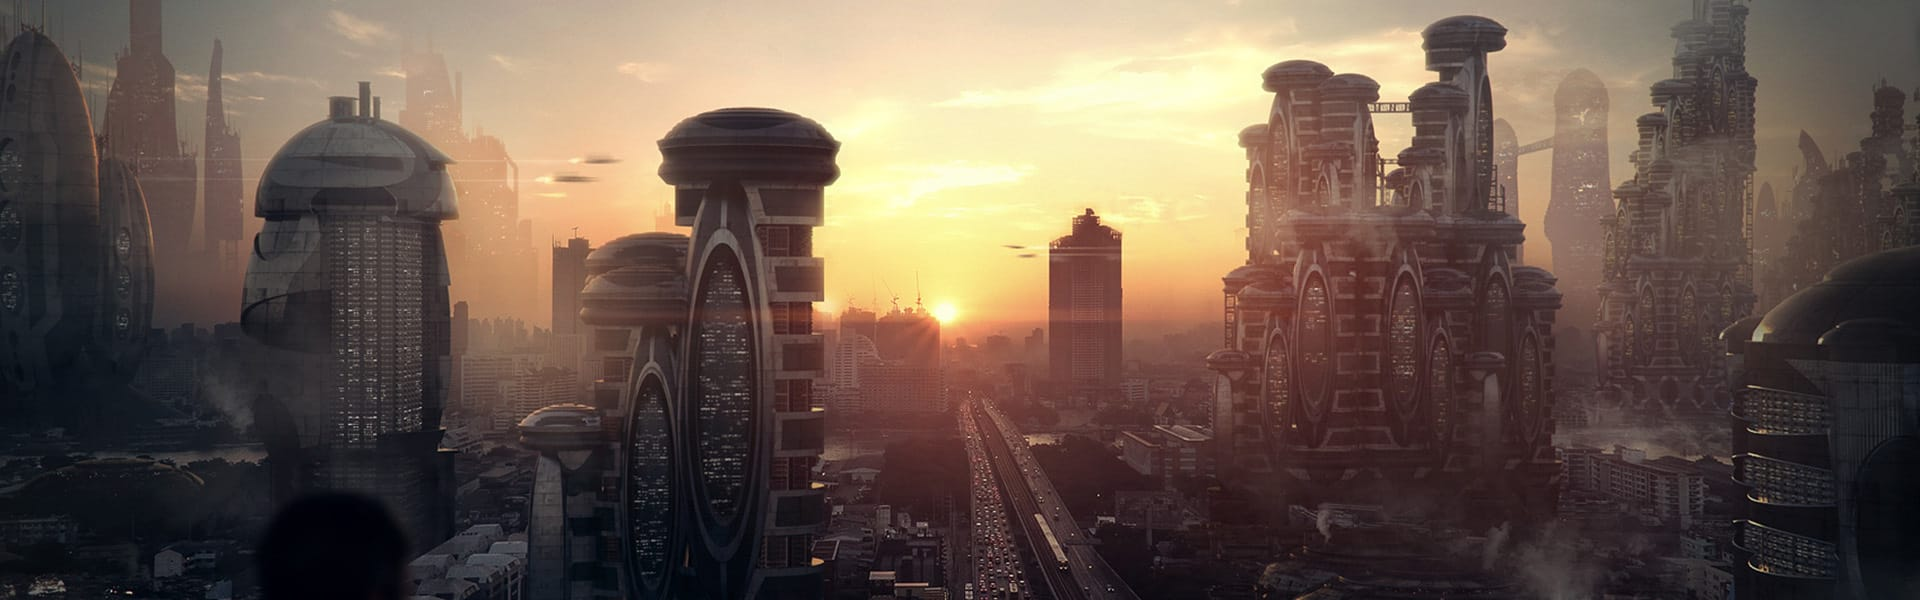 V-Ray for 3ds Max Cityscape Michael Johnson Sci-Fi City